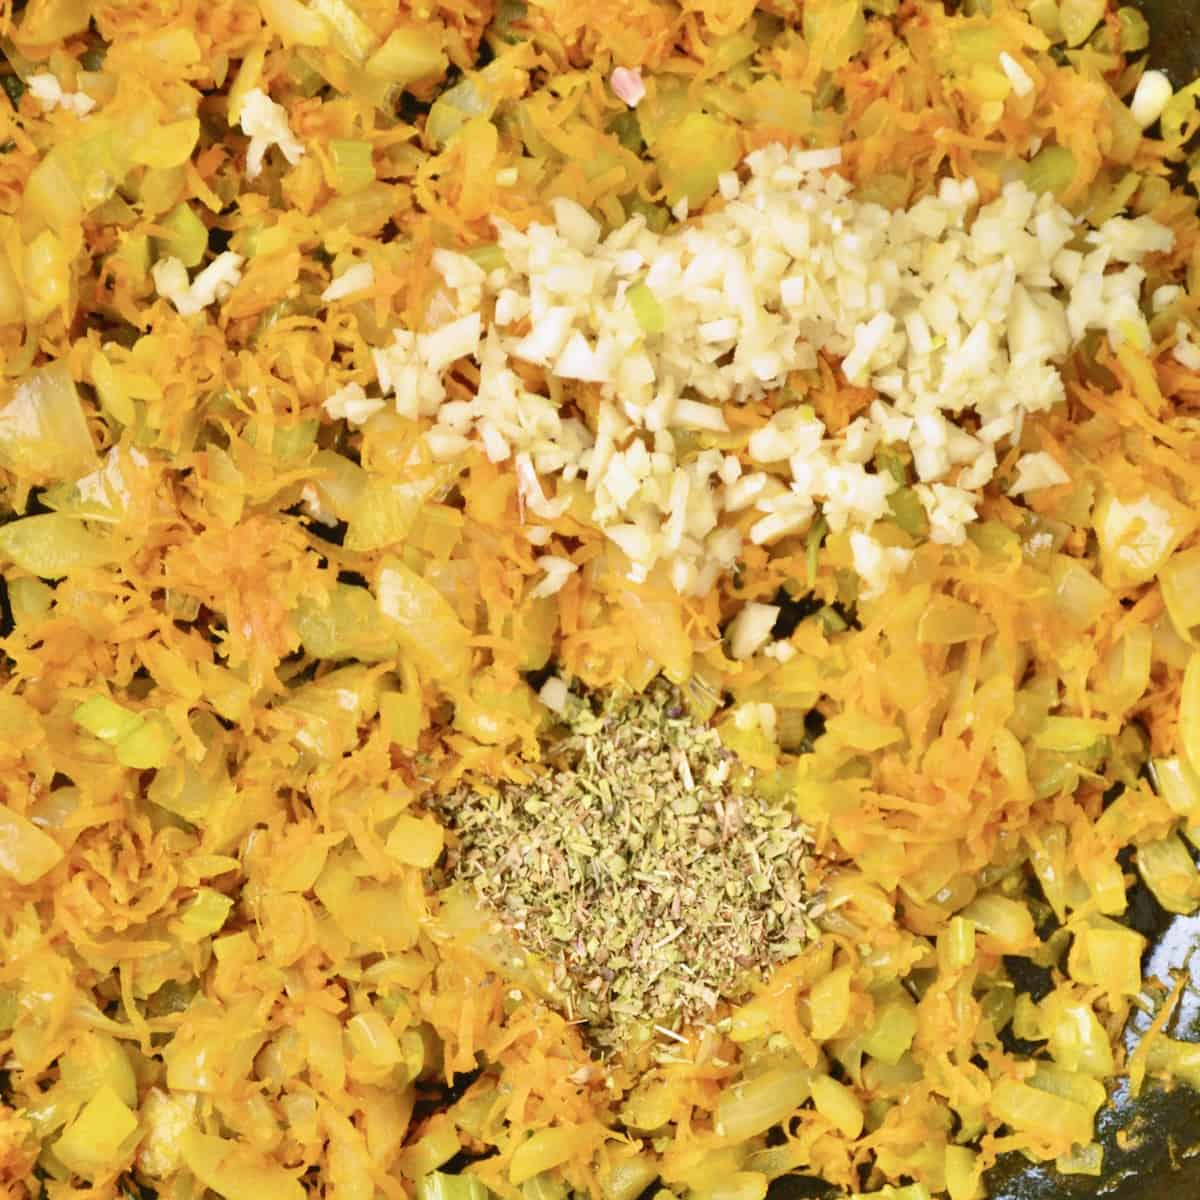 Minced garlic and dried herbs added to sauteing vegetables in a frying pan.